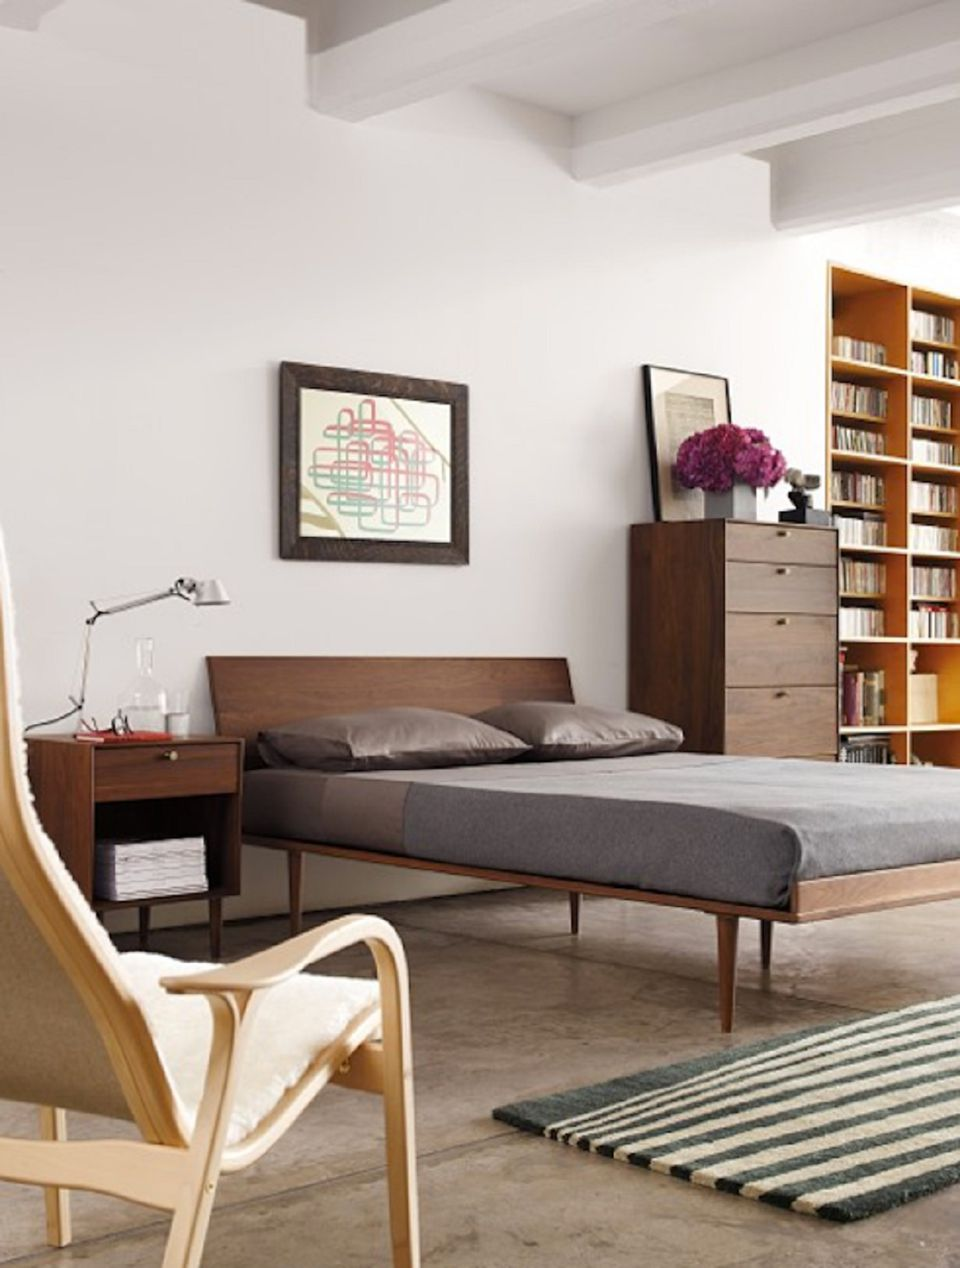 century midcentury ideas modern bedroom mid colorful decorating